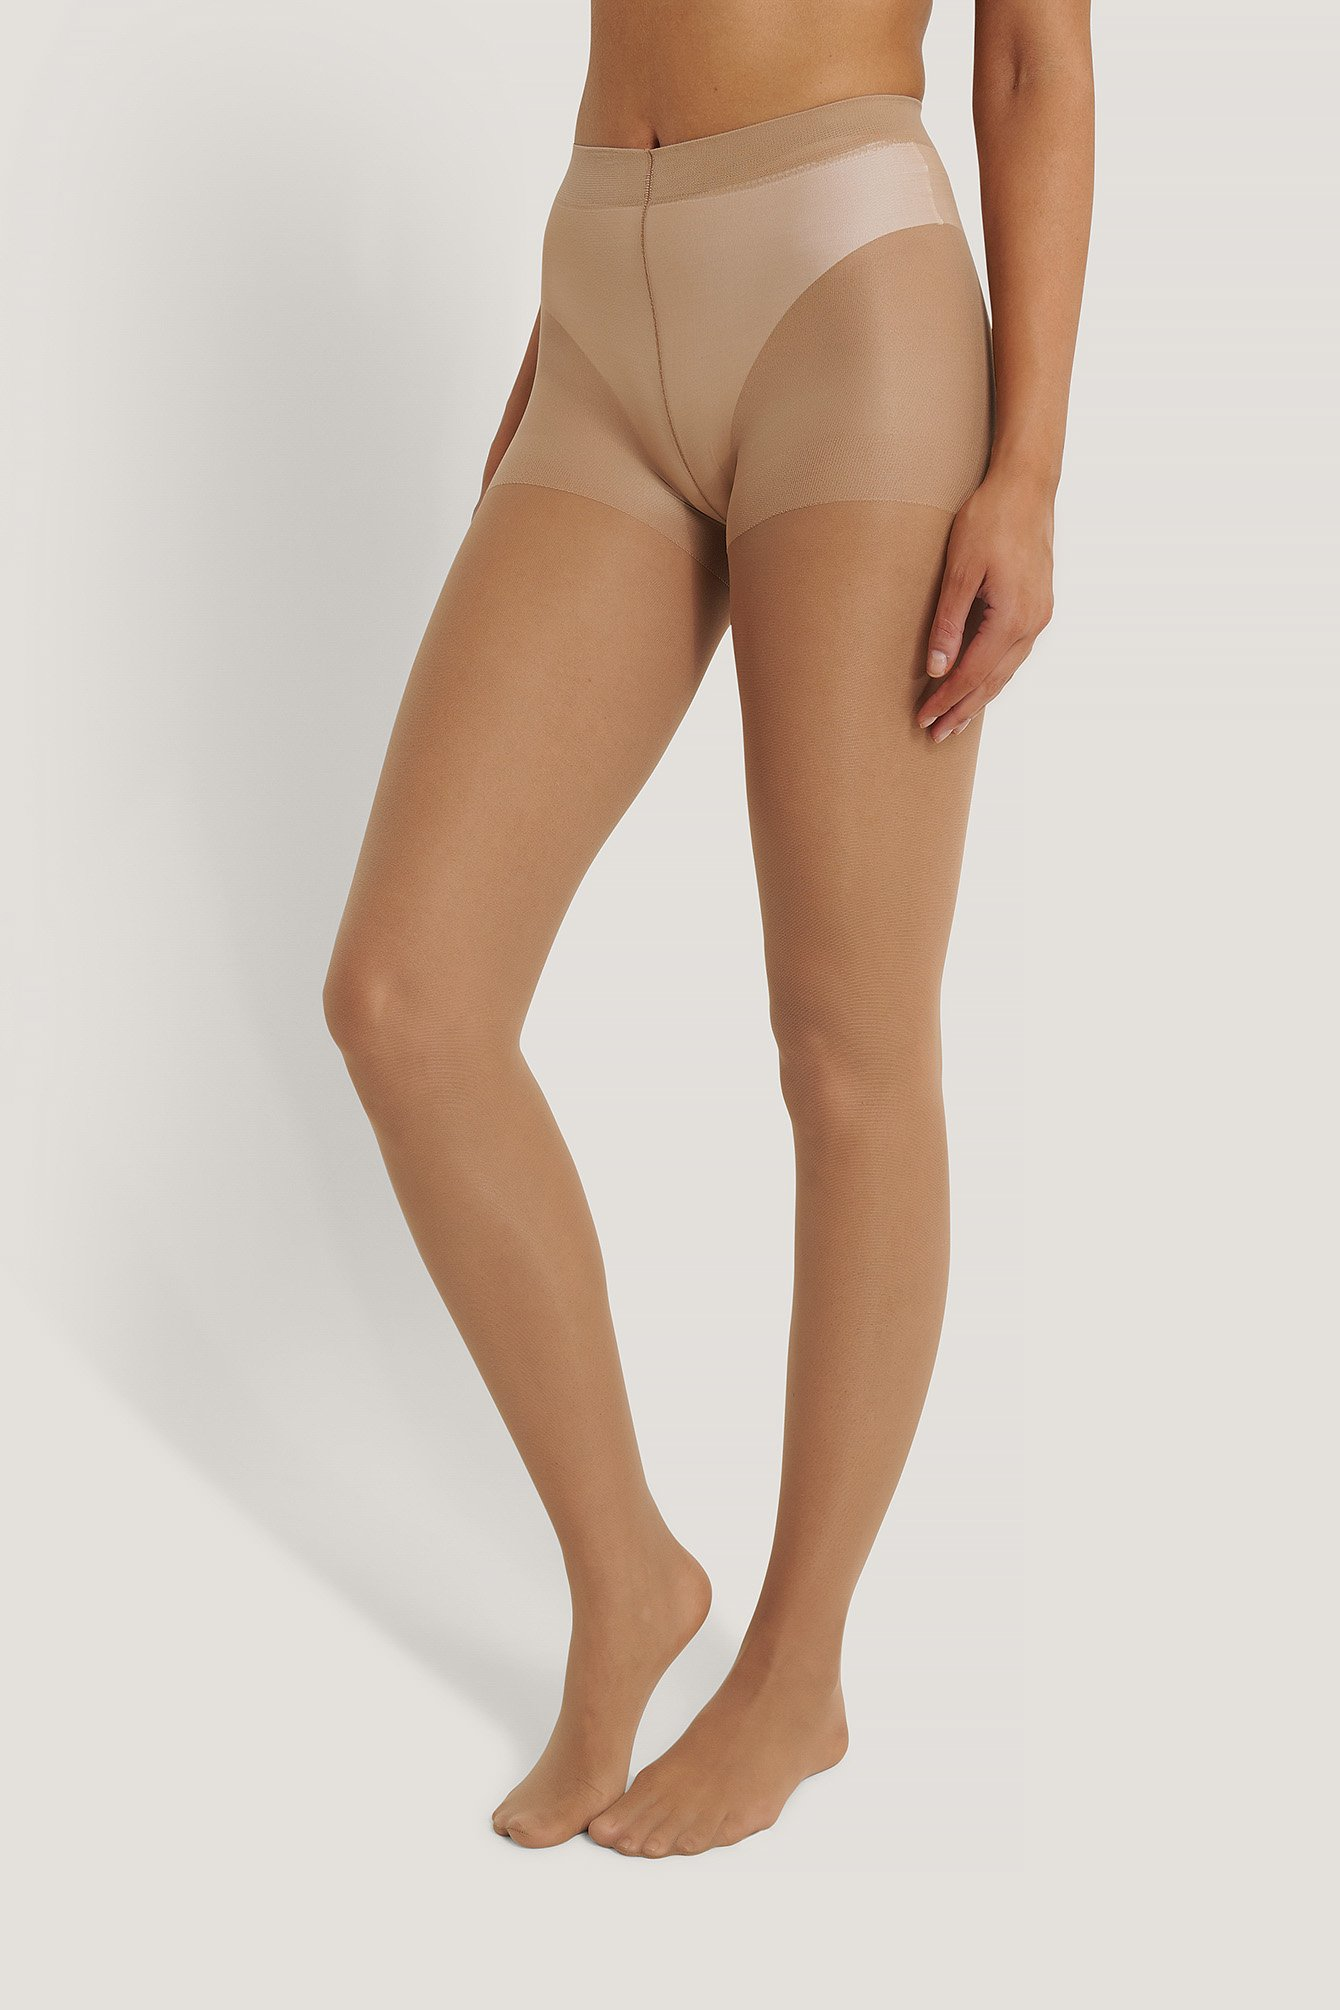 Nude Recycled Tights